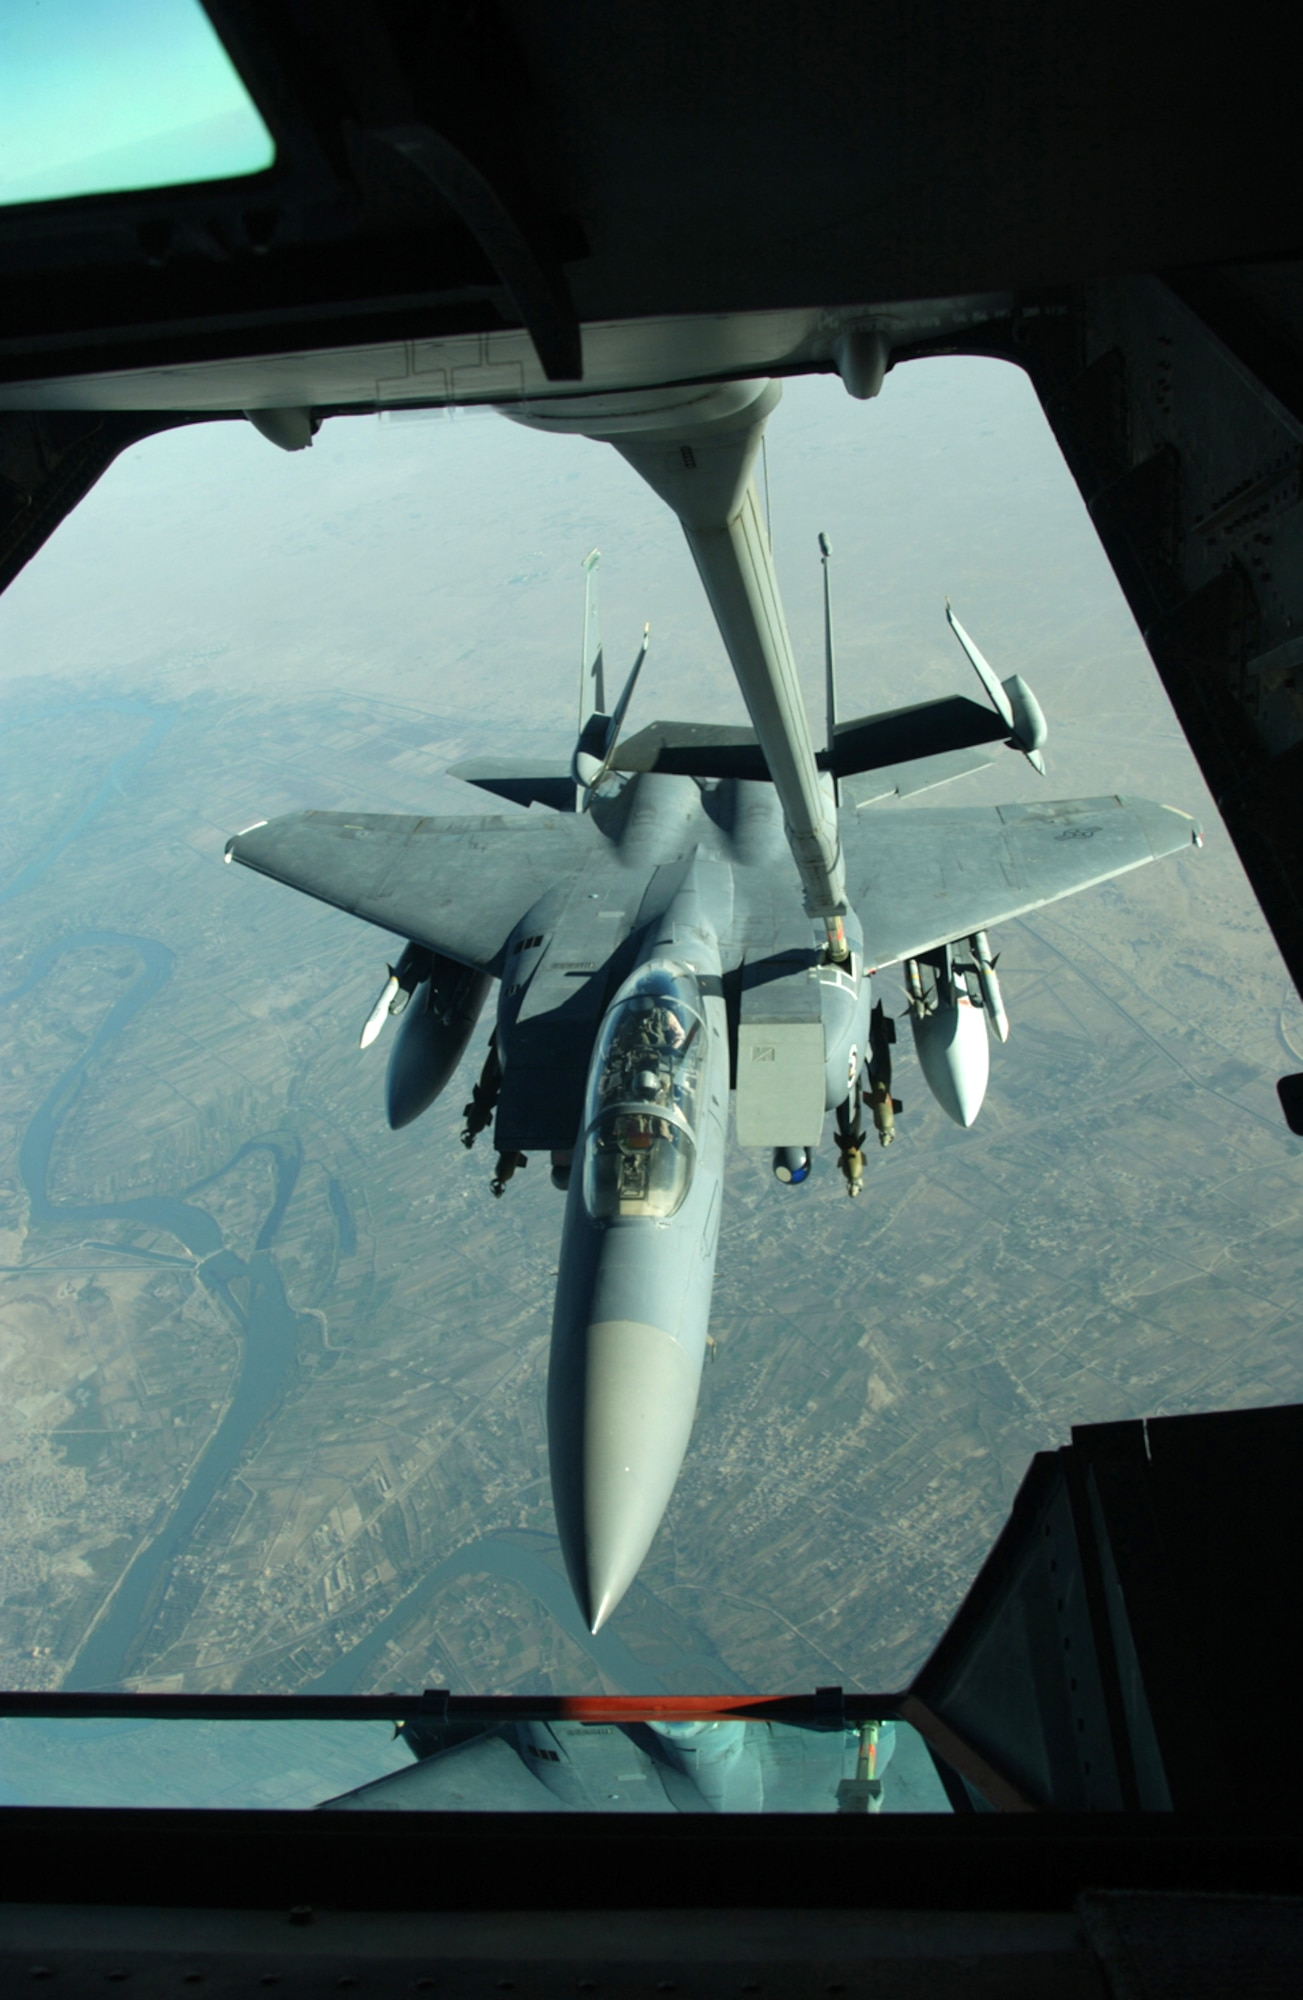 OVER IRAQ -- An F-15E Strike Eagle receives fuel from a 908th Expeditionary Aerial Refueling Squadron KC-10 Extender during a mission over Iraq.  (U.S. Air Force photo by Senior Master Sgt. Mark Moss)